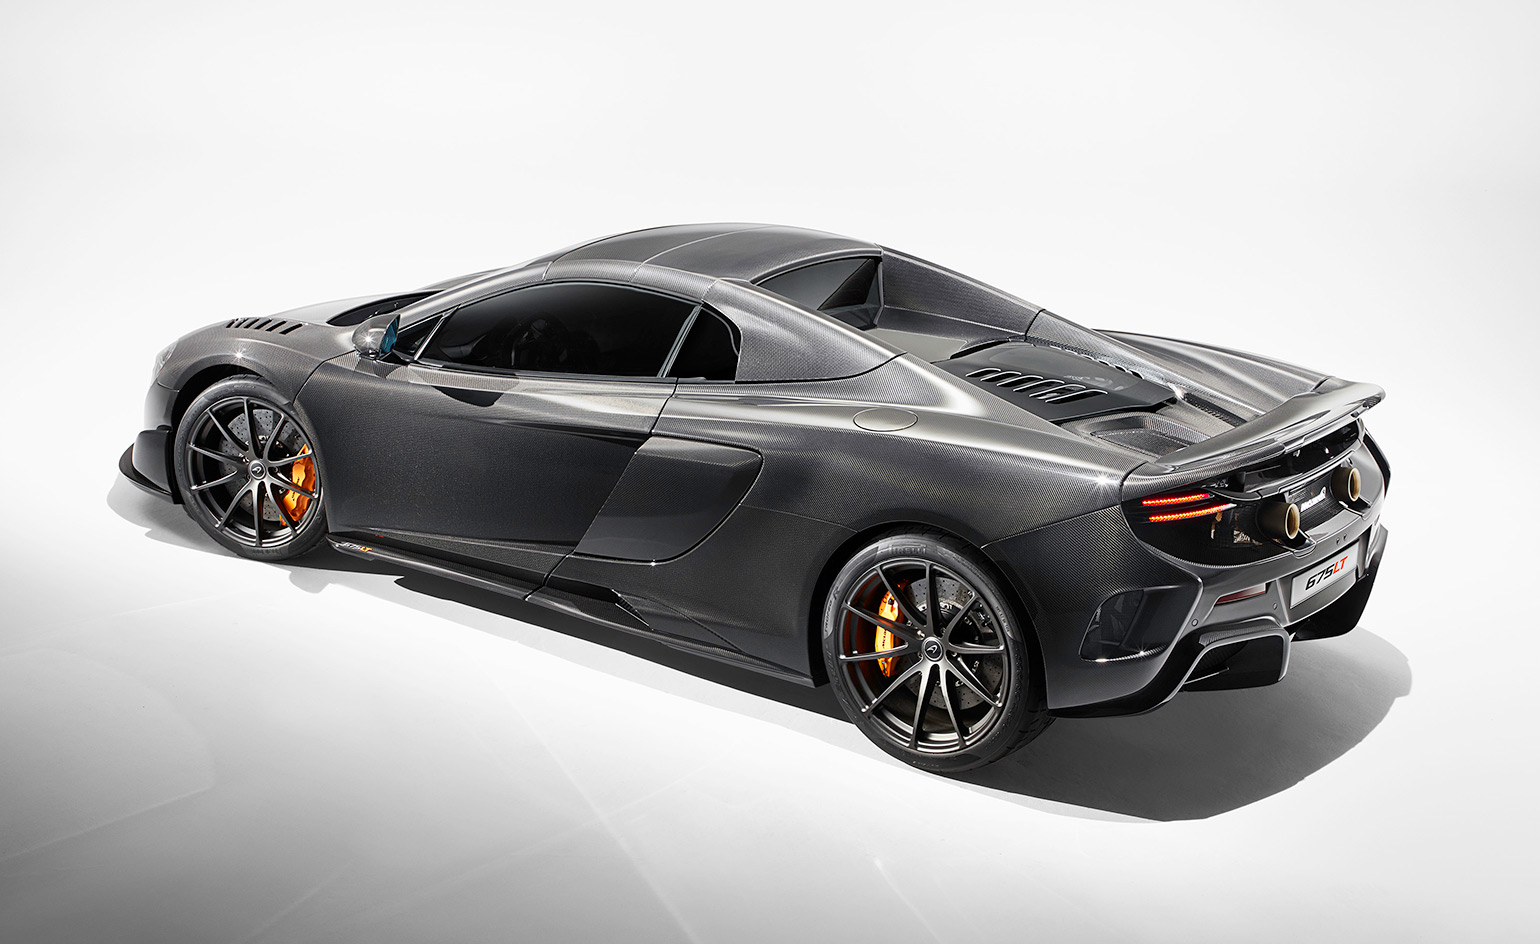 Only 25 cars will be made for the exclusive MSO Carbon Series LT